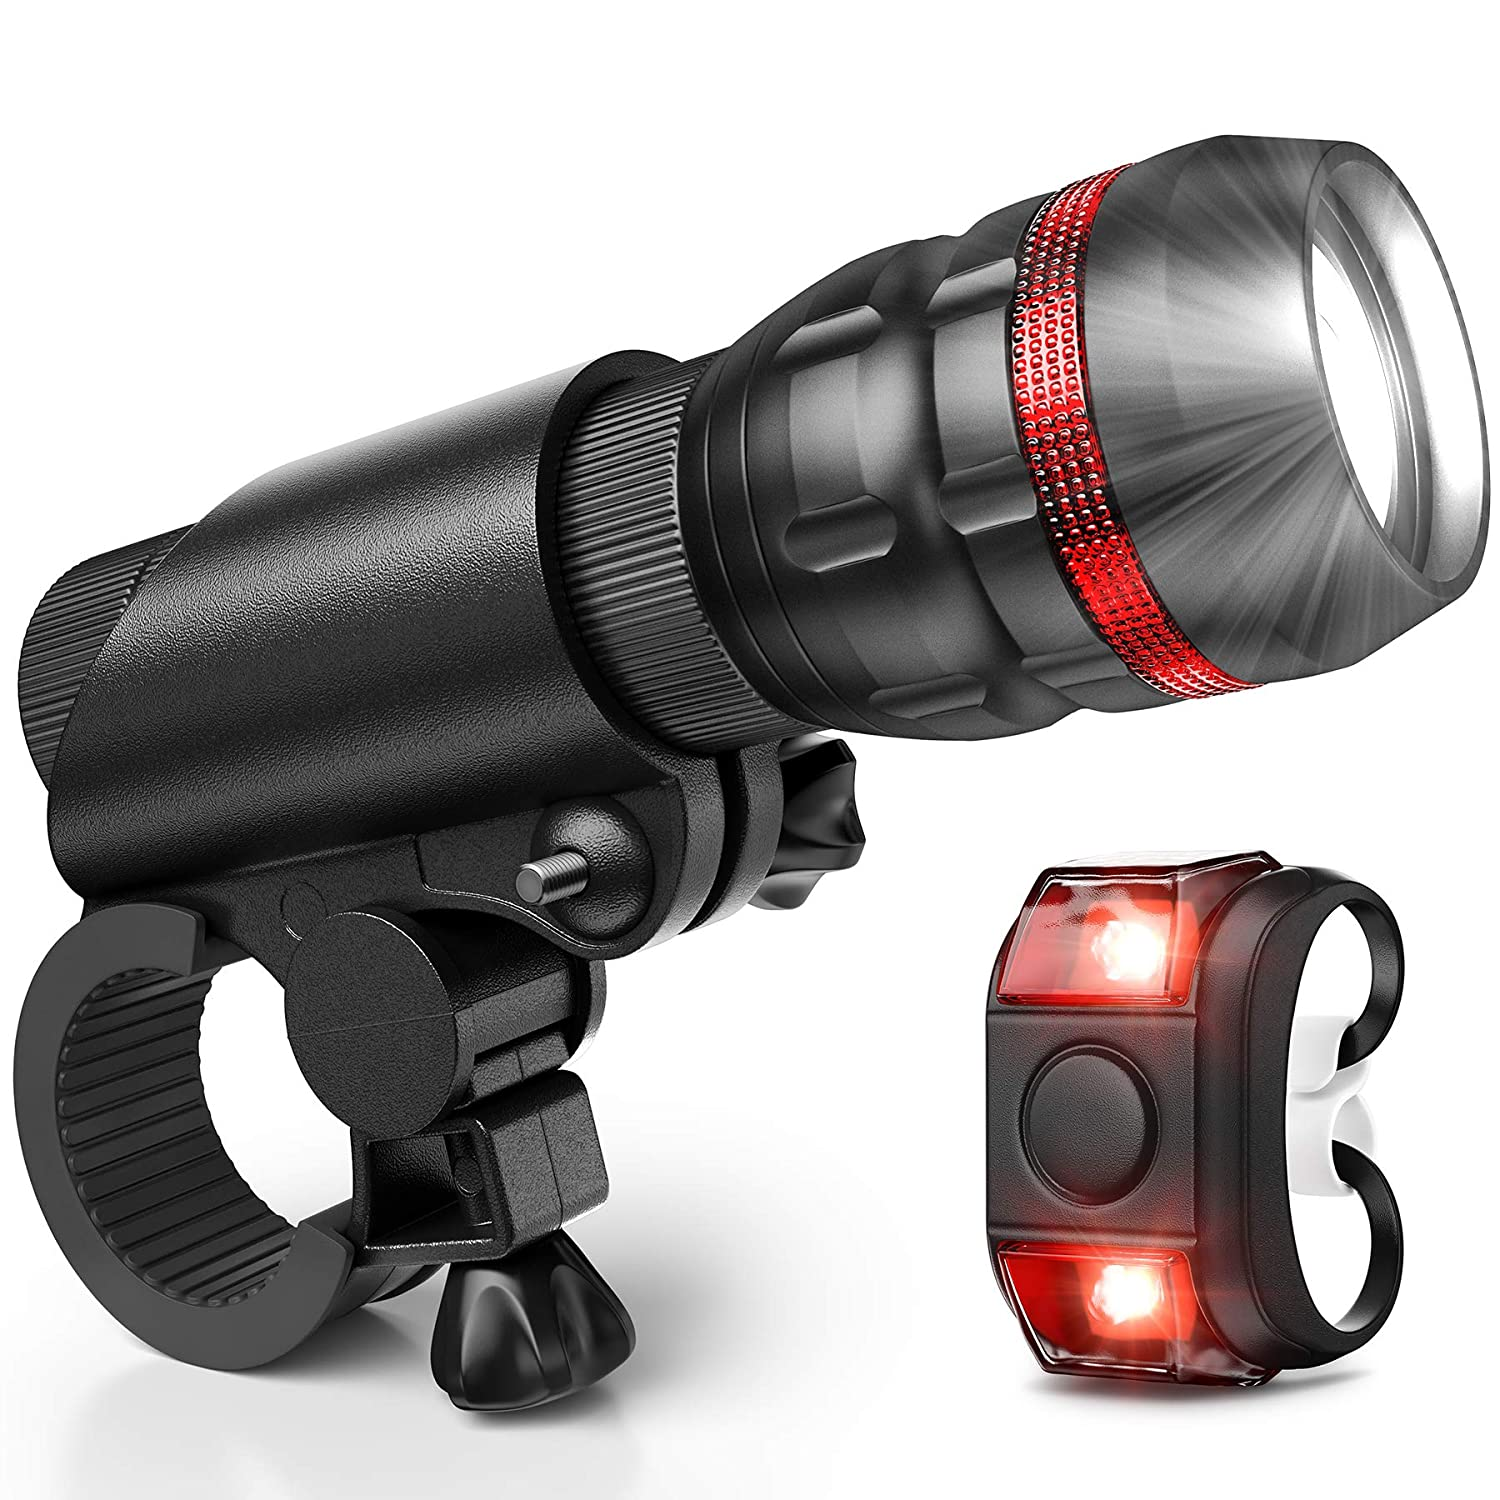 Vont Bike Light, Comes with Free Tail Light, Bicycle Light Installs in Seconds Without Tools, Powerful Bike Headlight Compatible with Mountain, Kids, Street, Bikes, Front and Back Illumination